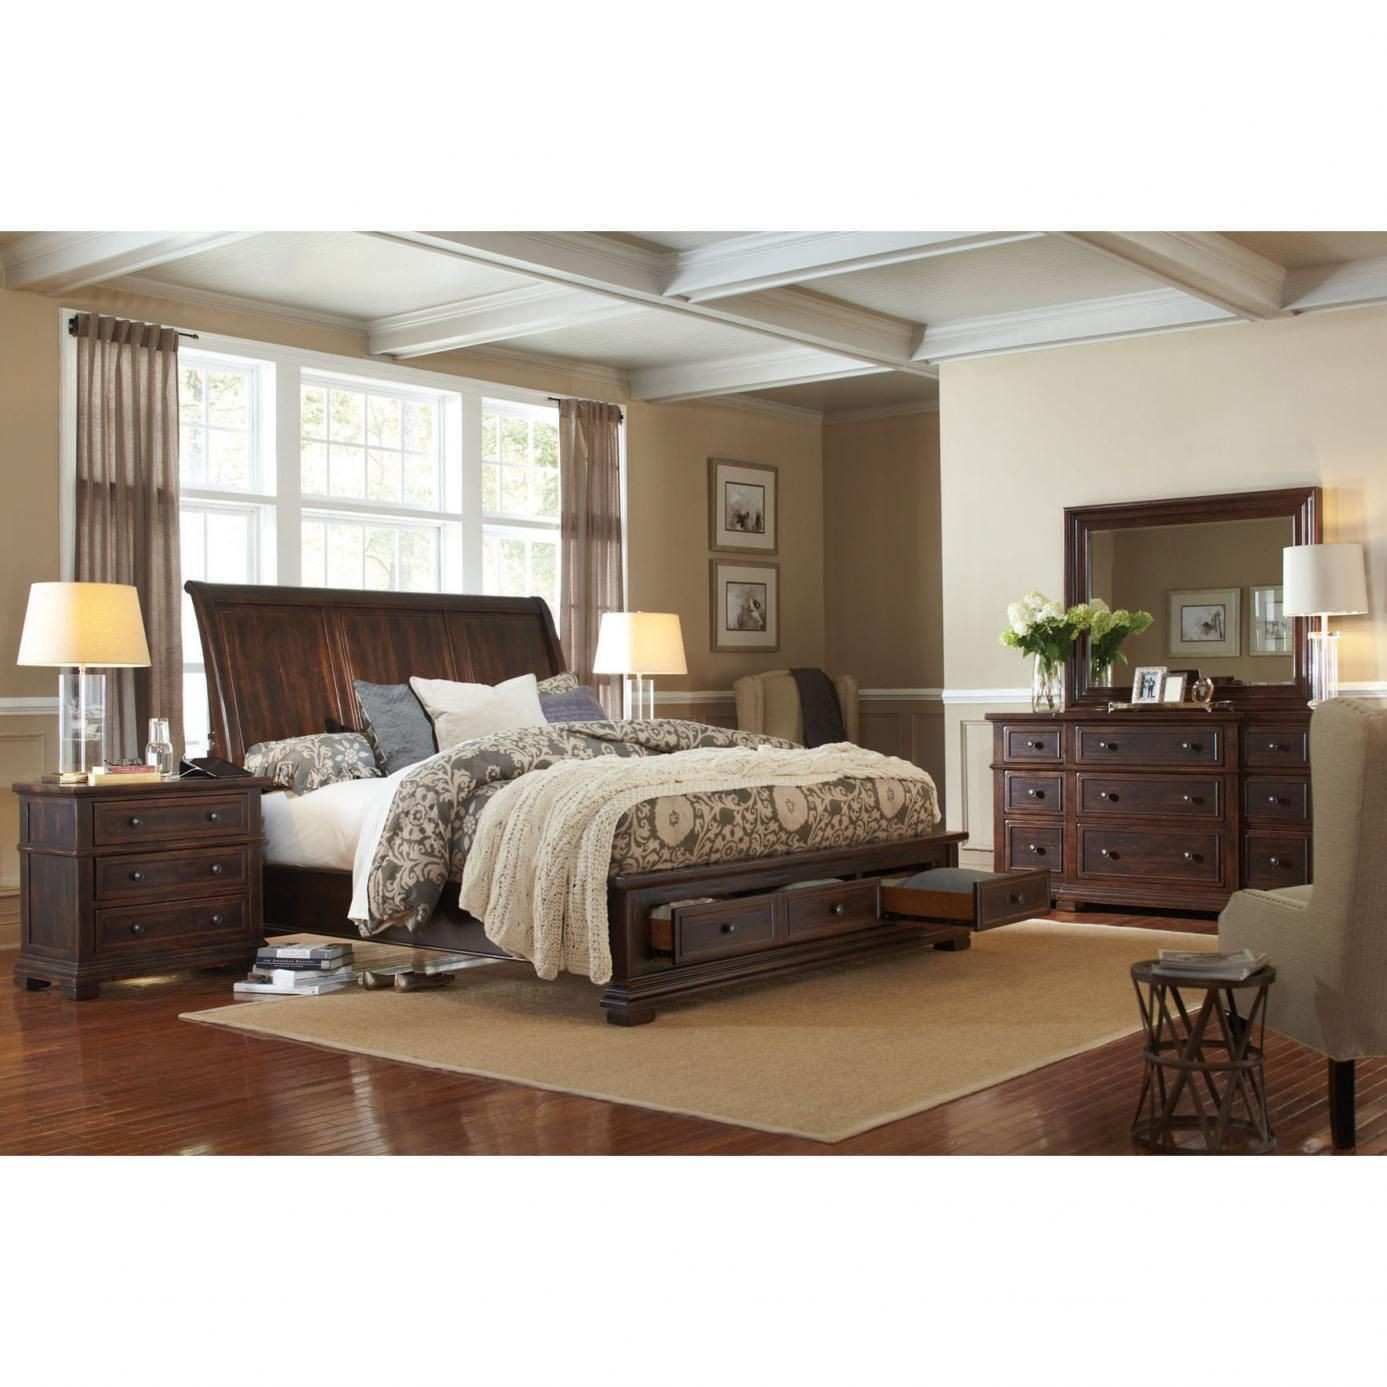 aspenhome Westbrooke 4 Piece Sleigh Storage Bedroom Set with 2nd